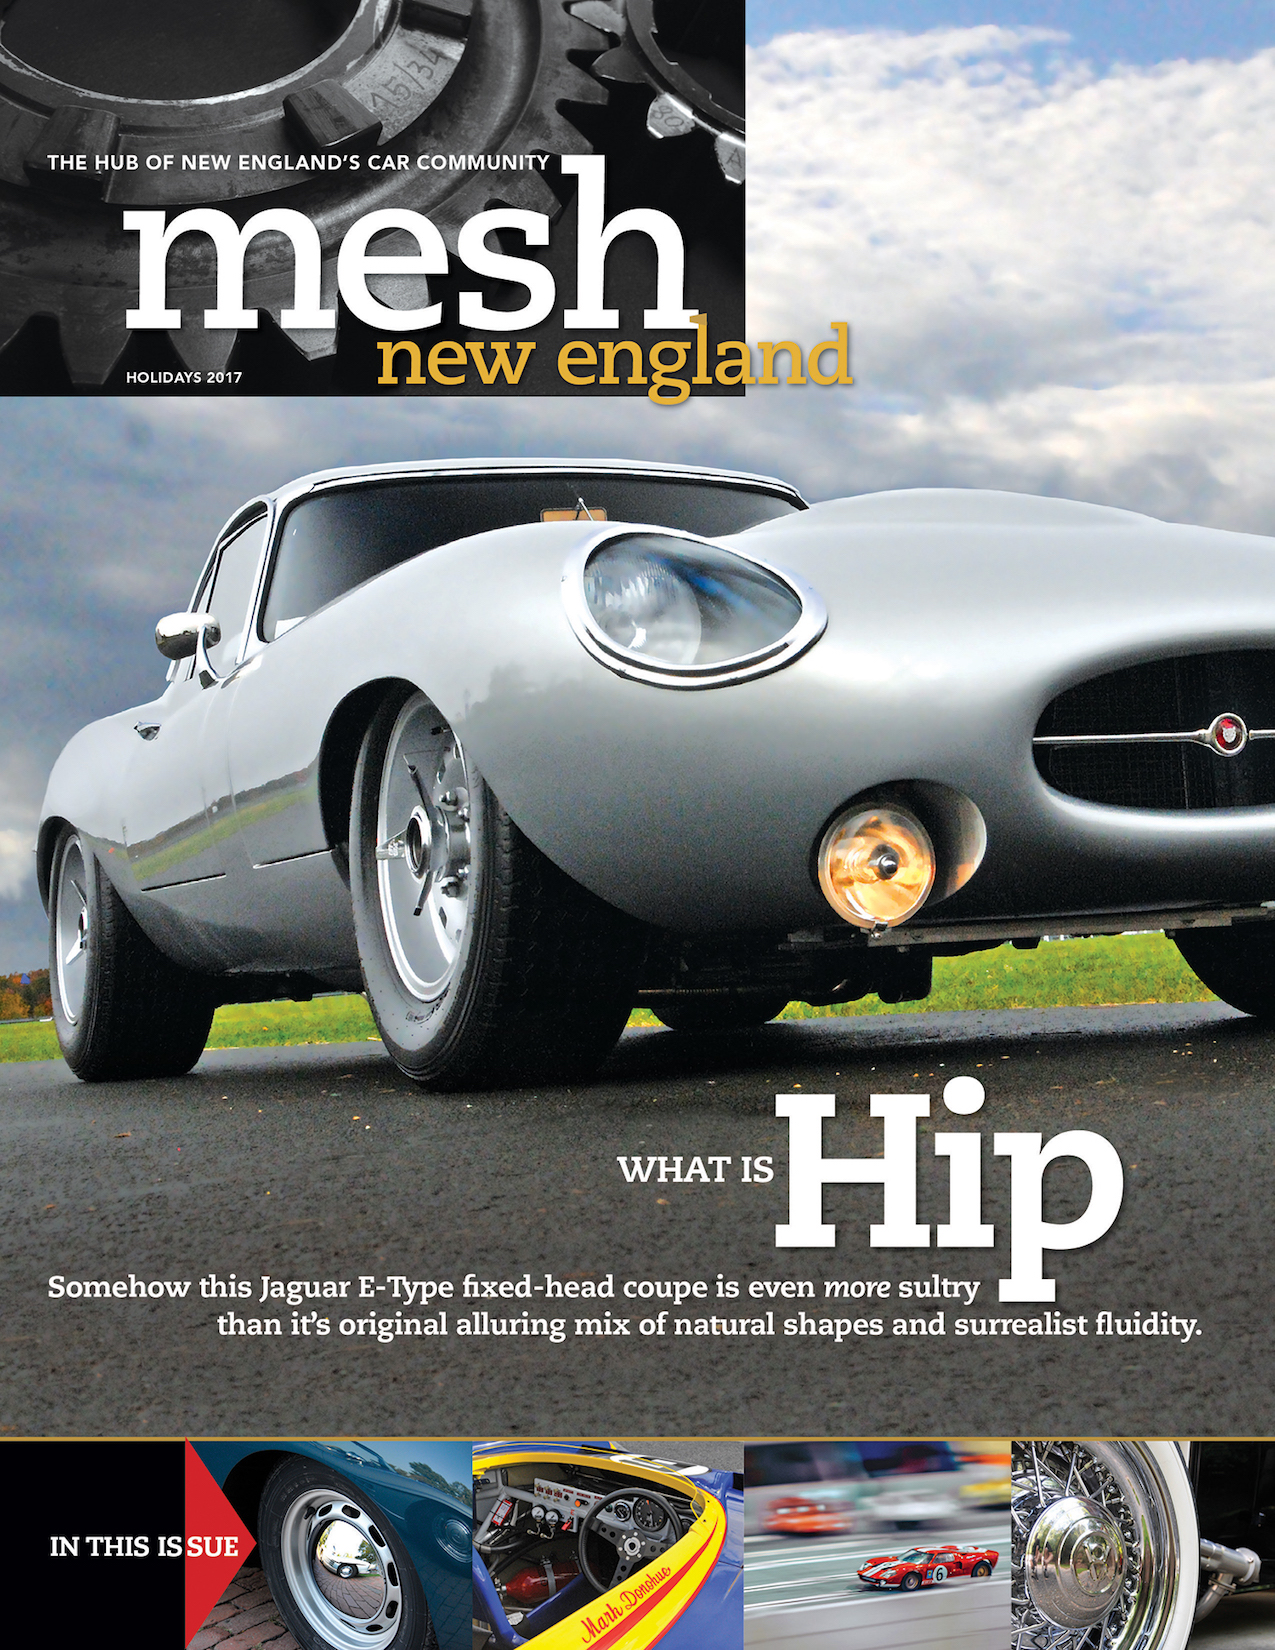 Holiday 2017 cover of mesh new england magazine with a Jaguar E-type fixed head coupe featured on the top.jpg